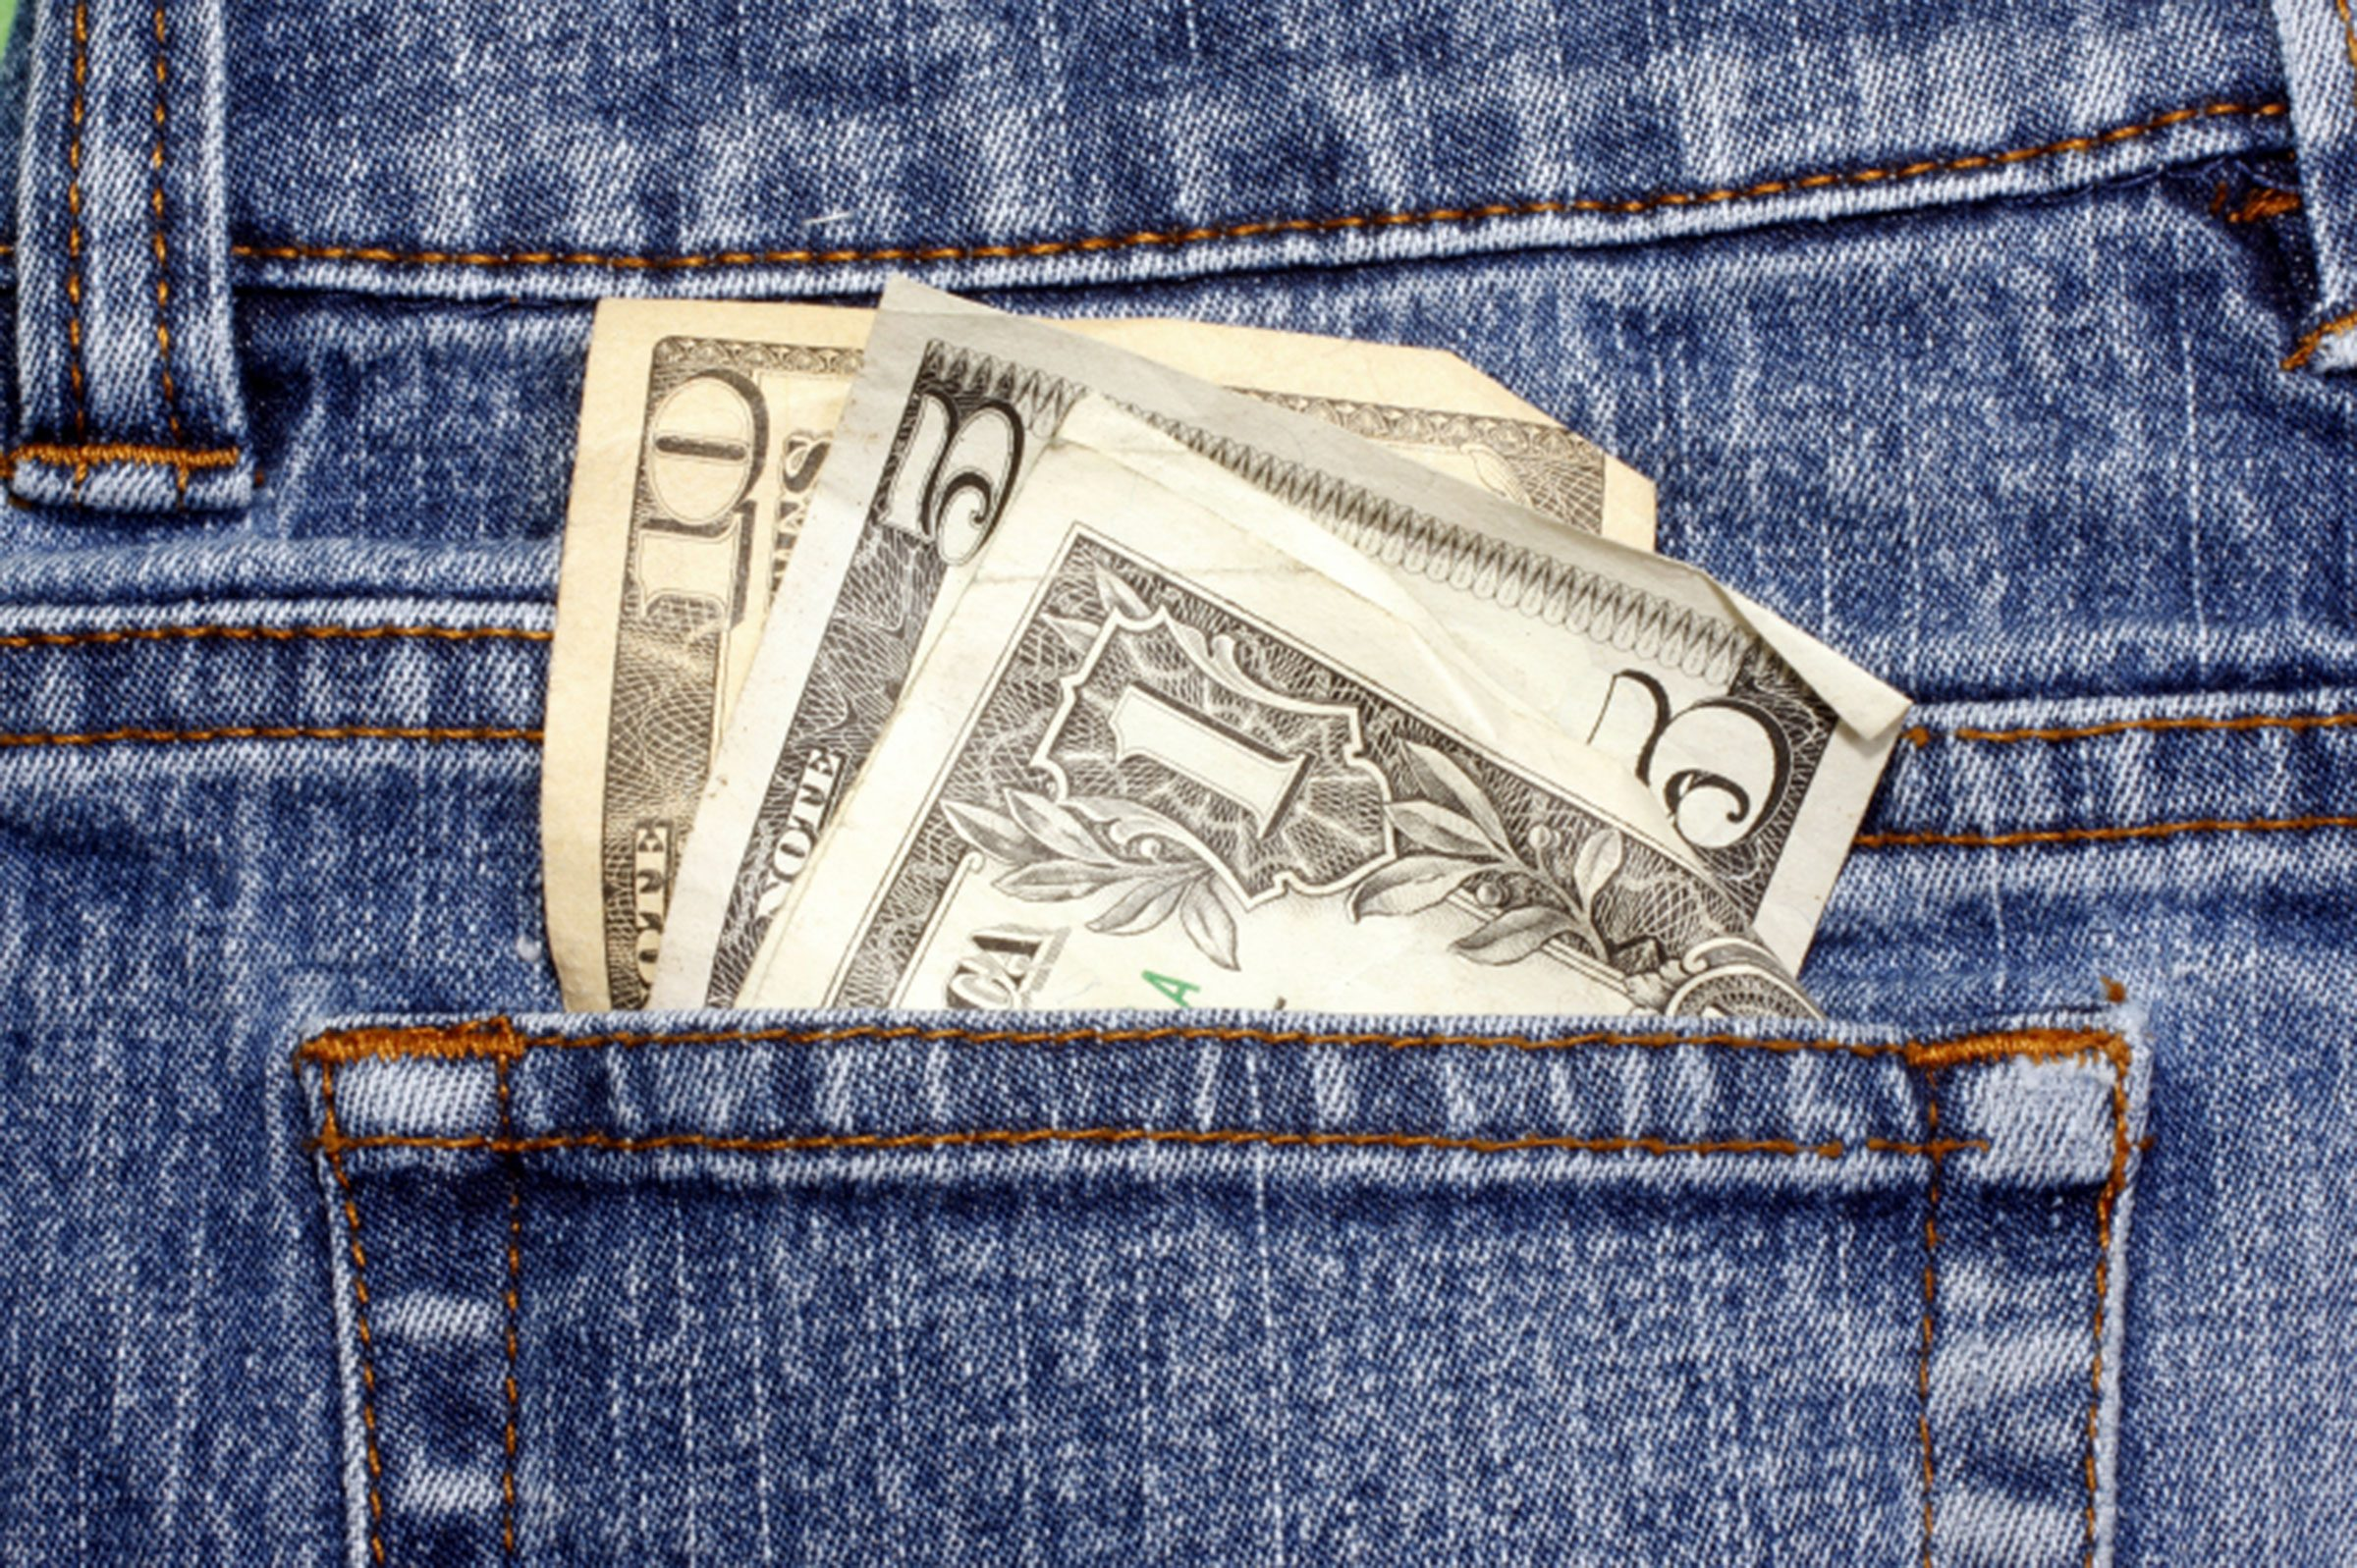 33. When using a new maid service, leave a few dollars hanging out of a pants pocket or lying on the counter.